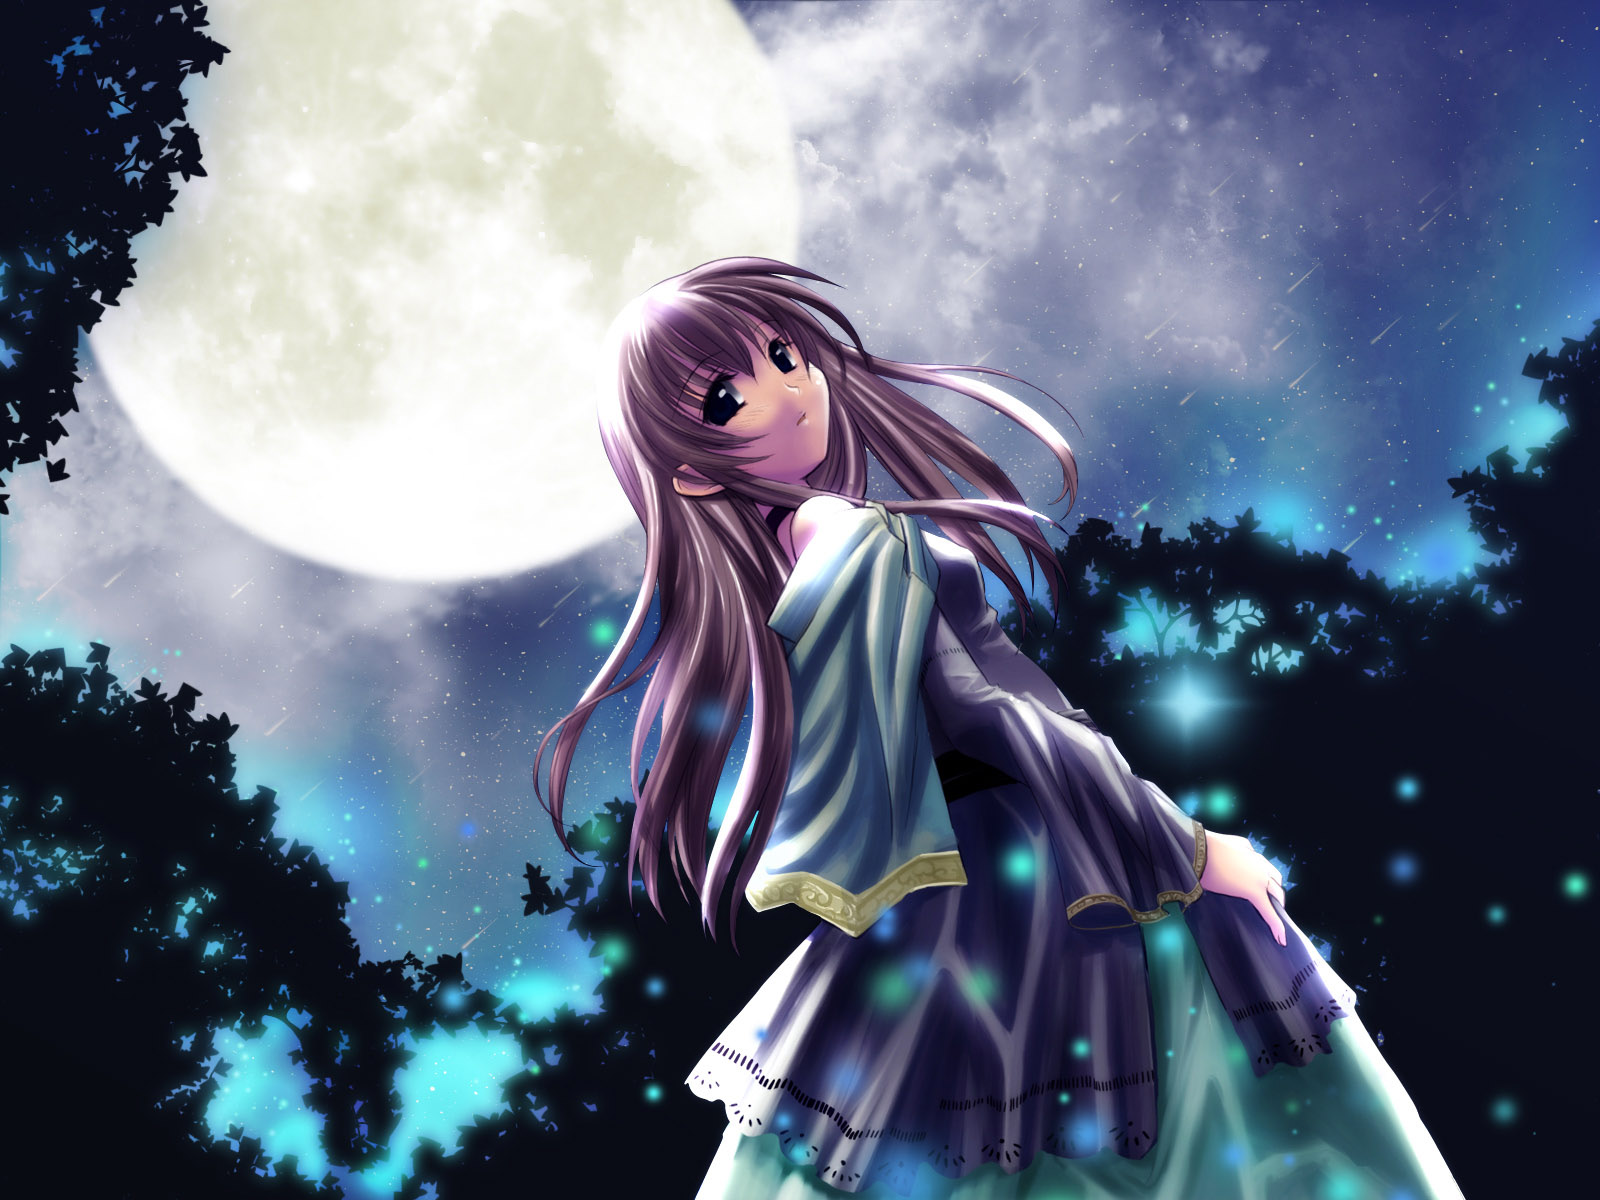 Moon anime girl